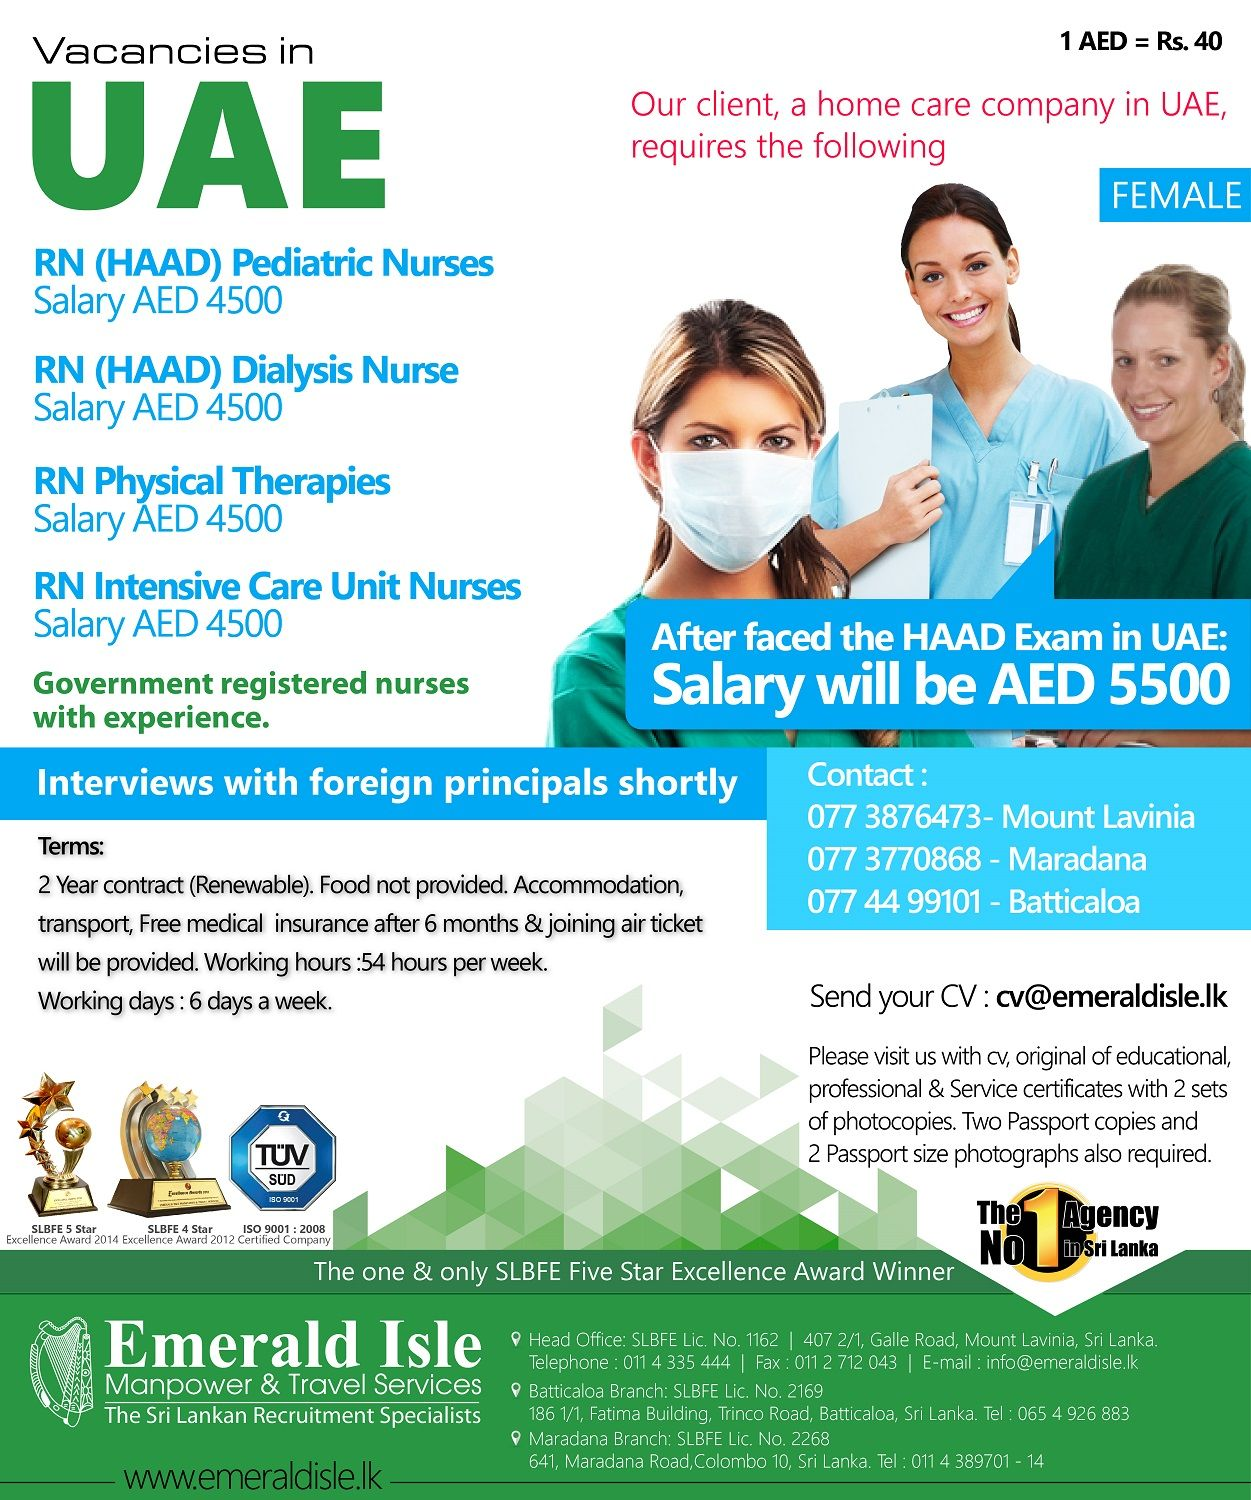 Foreign Jobs Foreign Employment Foreign Vacancies Dialysis Nurse Caring Company Intensive Care Unit